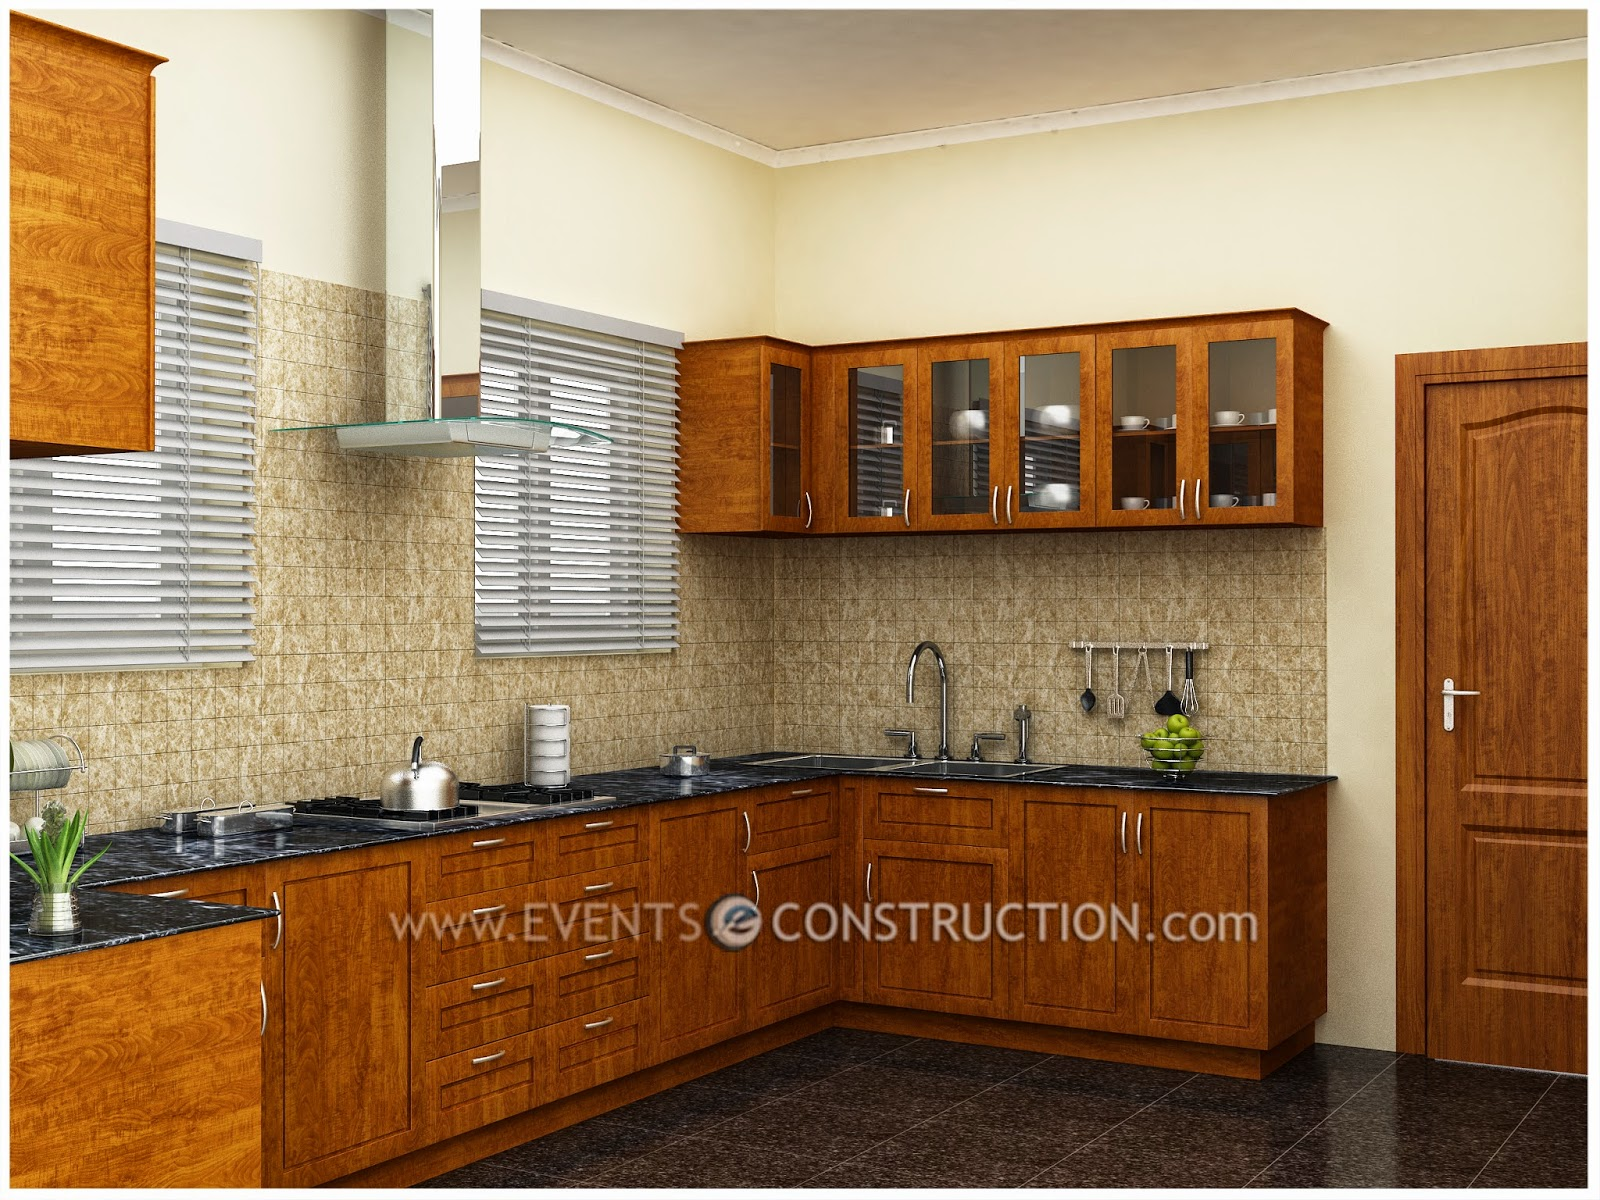 Evens construction pvt ltd simple kerala kitchen design for Kerala style kitchen photos